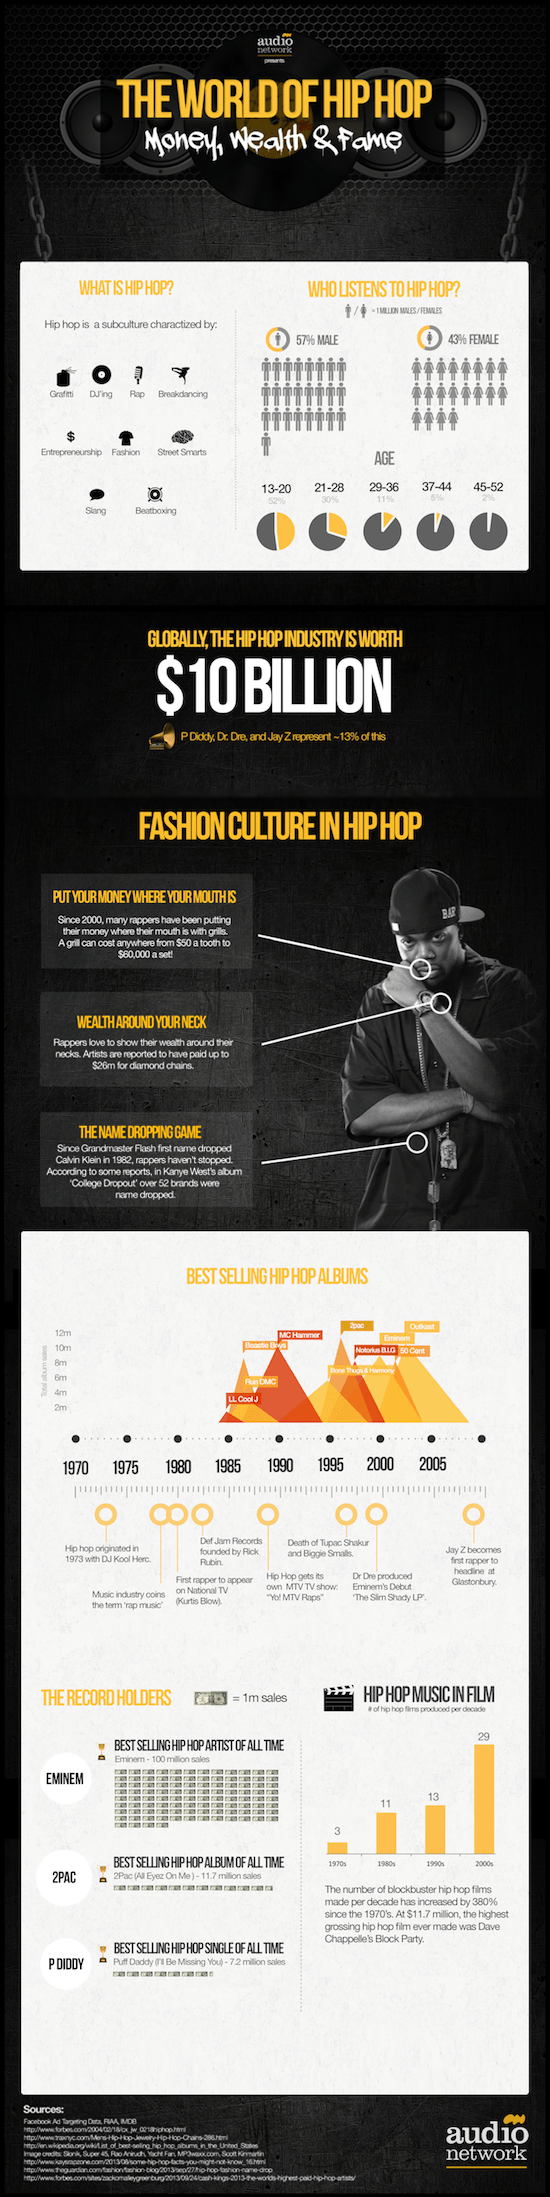 AudioNetwork_TheWorldofHipHopInfographic_HipHopandRnBCollection.png